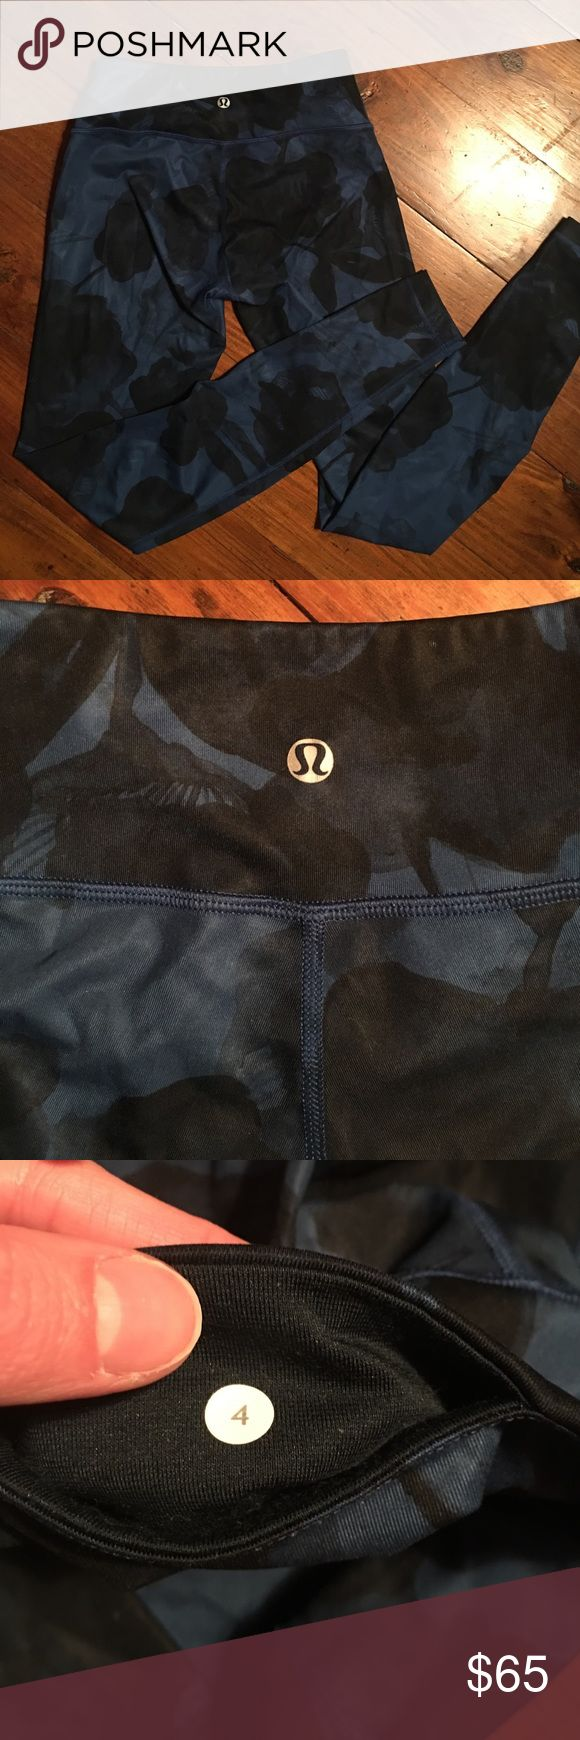 ✨24 hr sale✨Lululemon leggings Excellent condition! Couldn't find any flaws. Beautiful dark blue and black design. Full length. lululemon athletica Pants Leggings